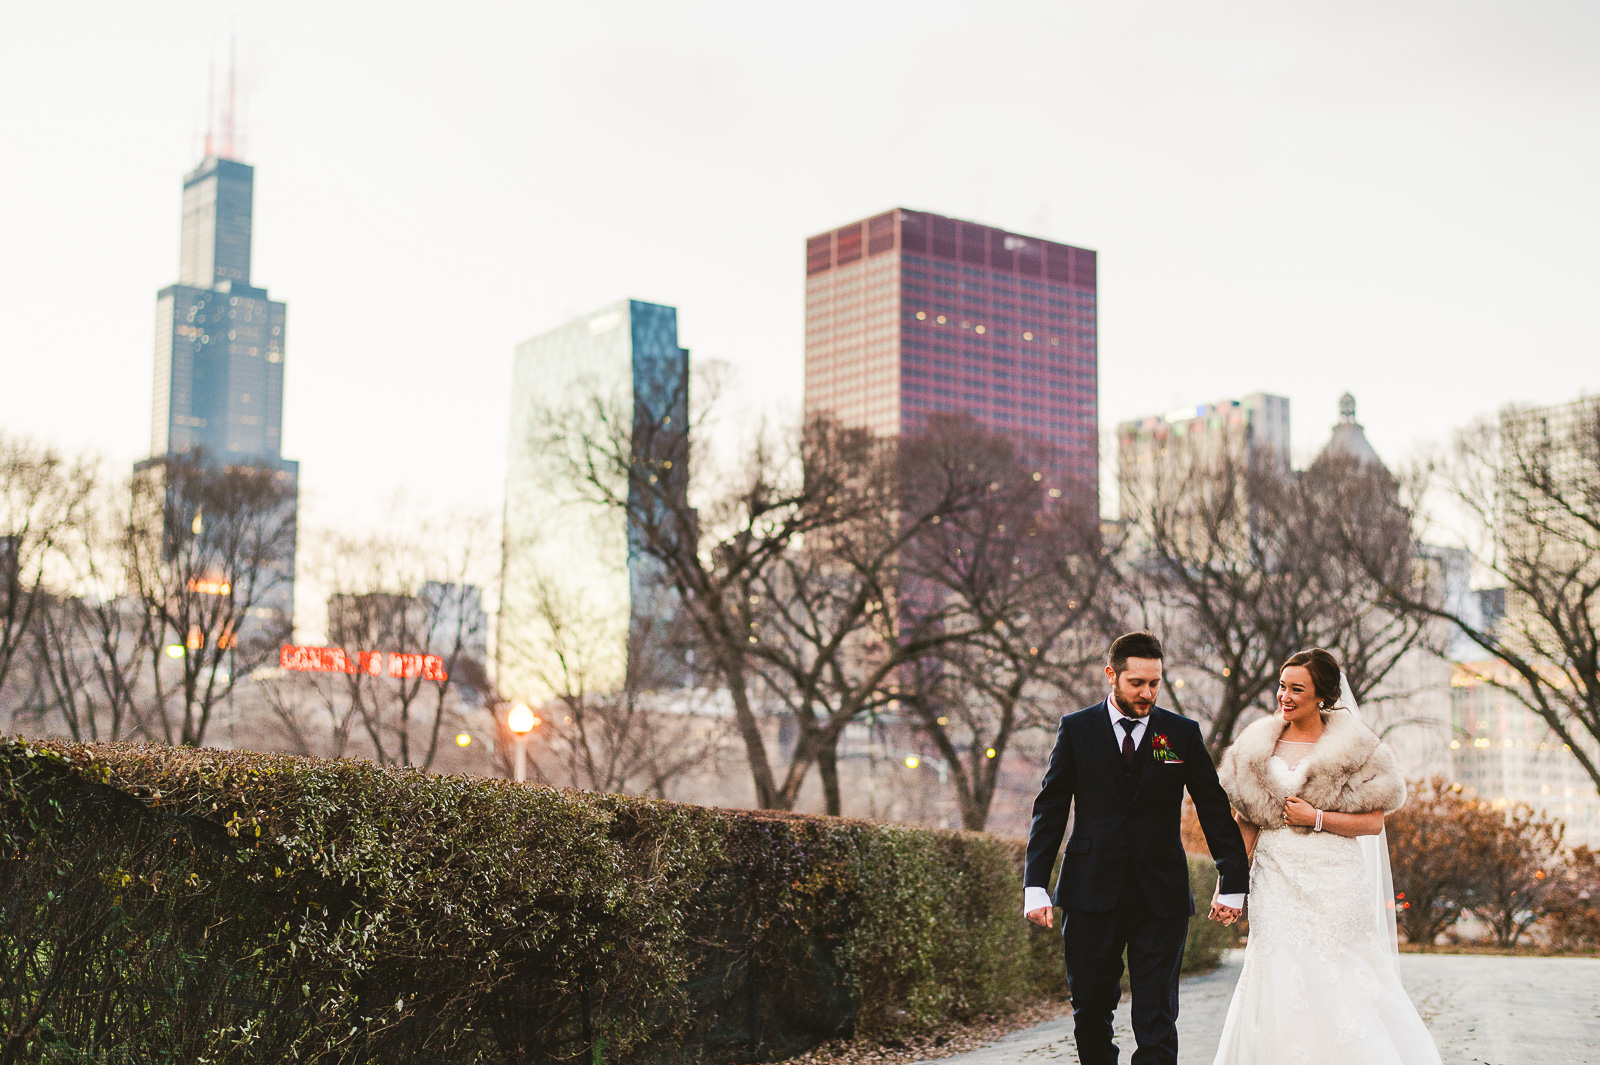 143 chicago wedding photographer best portraits during weddings review - 2018 in Review // My Favorite Chicago Wedding Photography Portraits